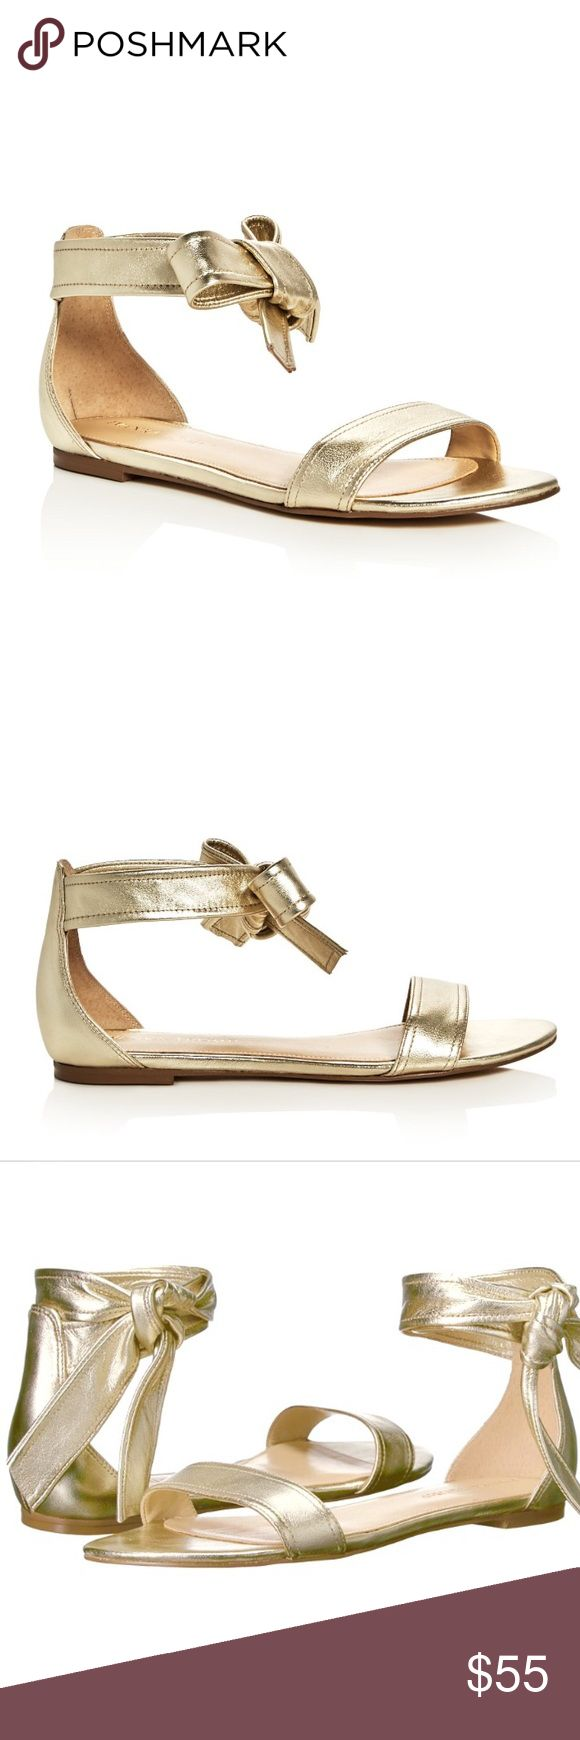 Ivanka Trump Leather Gold Ankle Tie Sandals Brand New without tags or box. Elegant and comfortable, these classy flats by Ivanka Trump are a closet staple. These ladylike sandals feature a leather upper; man made sole; ankle tie wrap closure; round toe silhouette with single toe strap; soft lining and cushioned footbed; Size: 6.5M. Color: Gold. First 3 pictures are stock for styling reference. The rest are of the actual Sandals on sale. Reasonable offers welcome 😊 Ivanka Trump Shoes Sandals